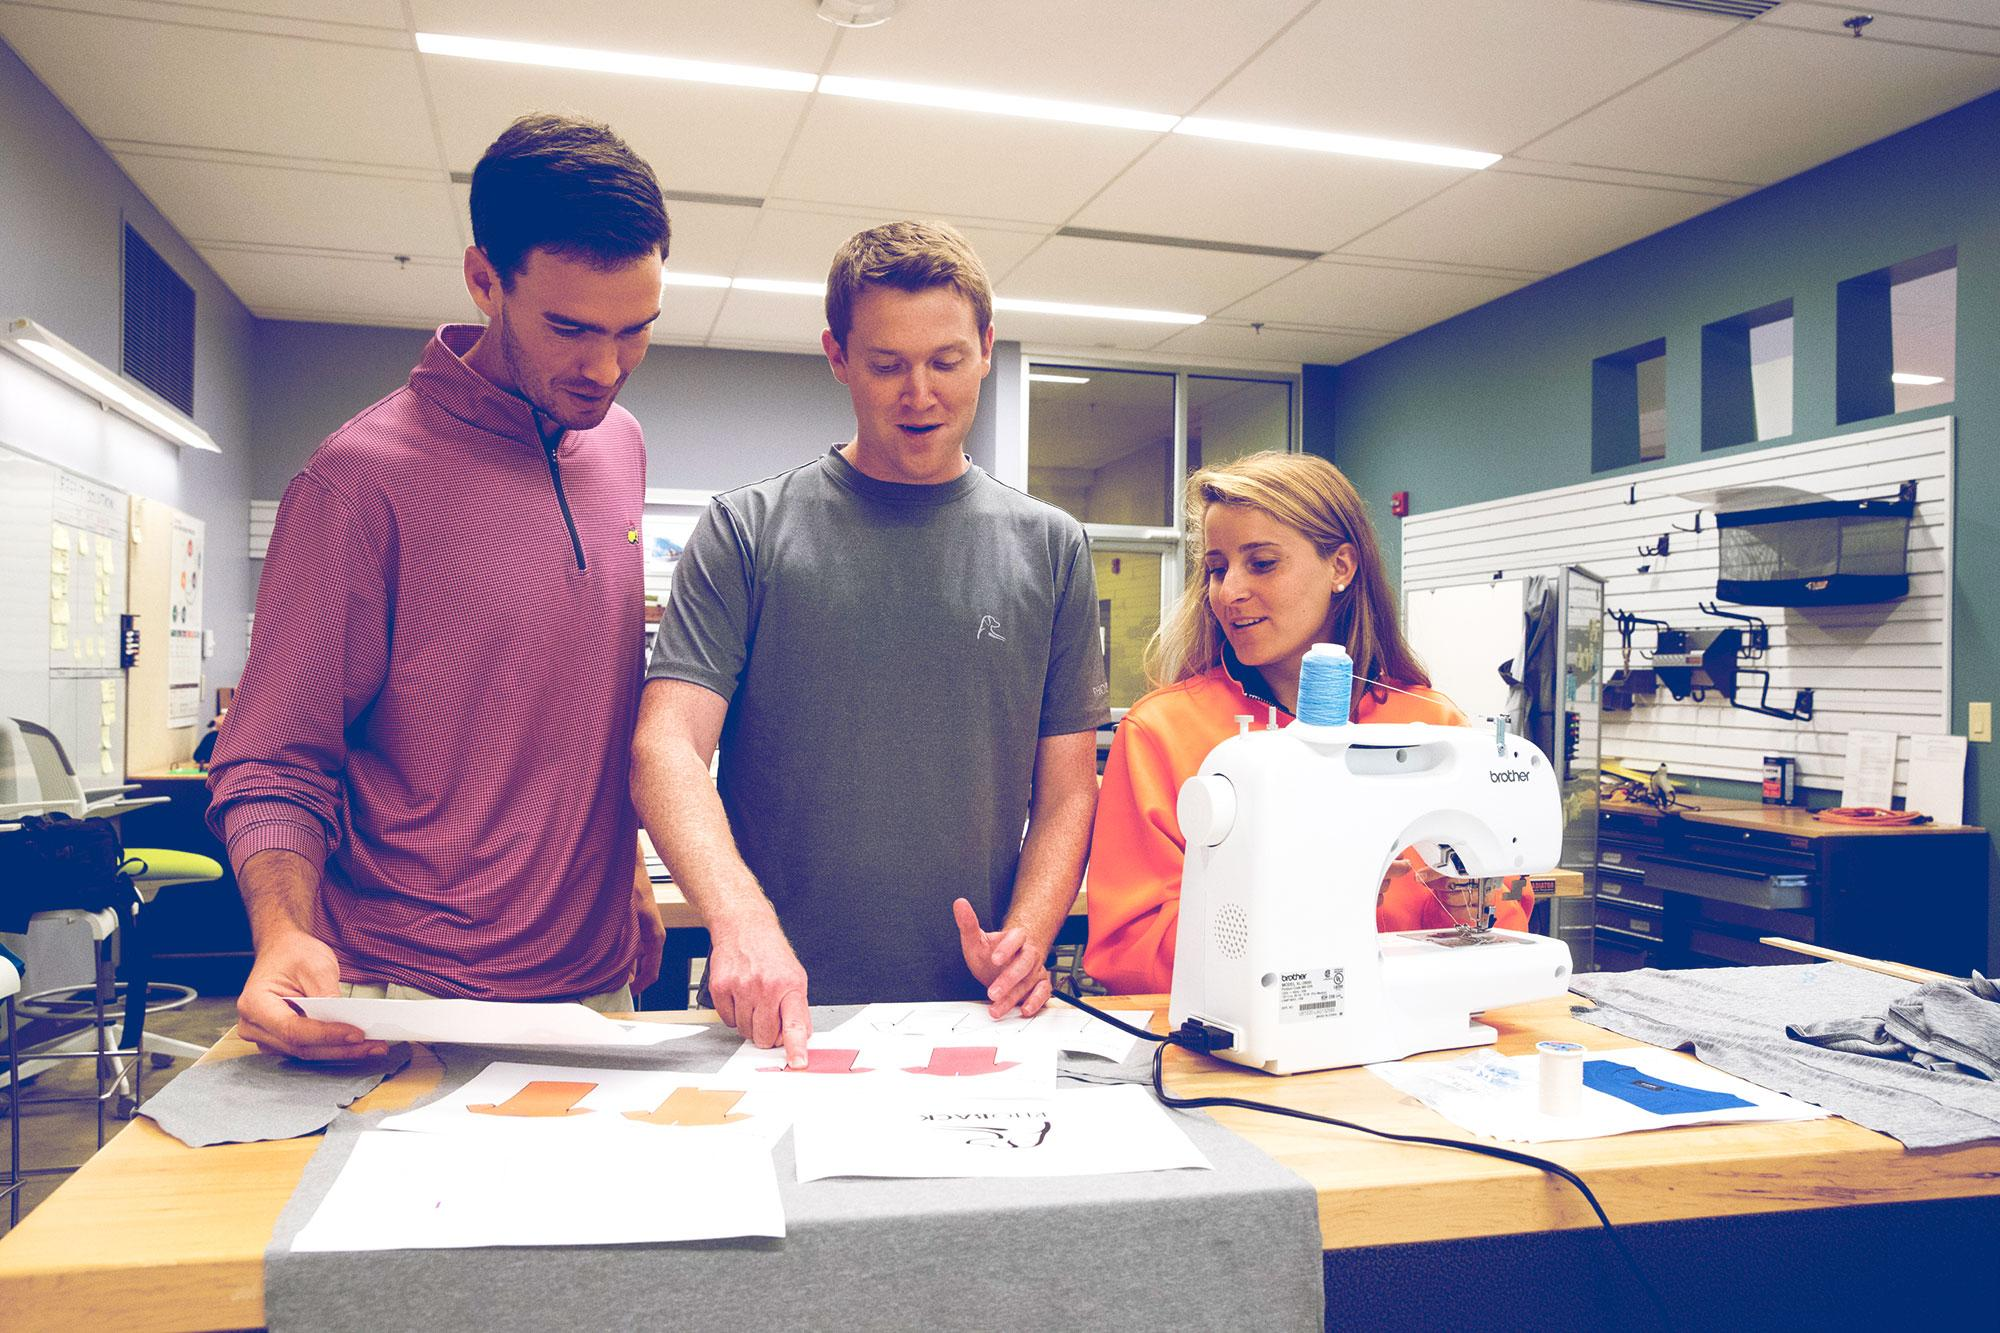 Matt Loftus, left, friend and business partner Kevin Hubbard and wife Kristina Loftus, shown here in UVA's iLab, had little idea that a pair of orange pants would spark their next business.